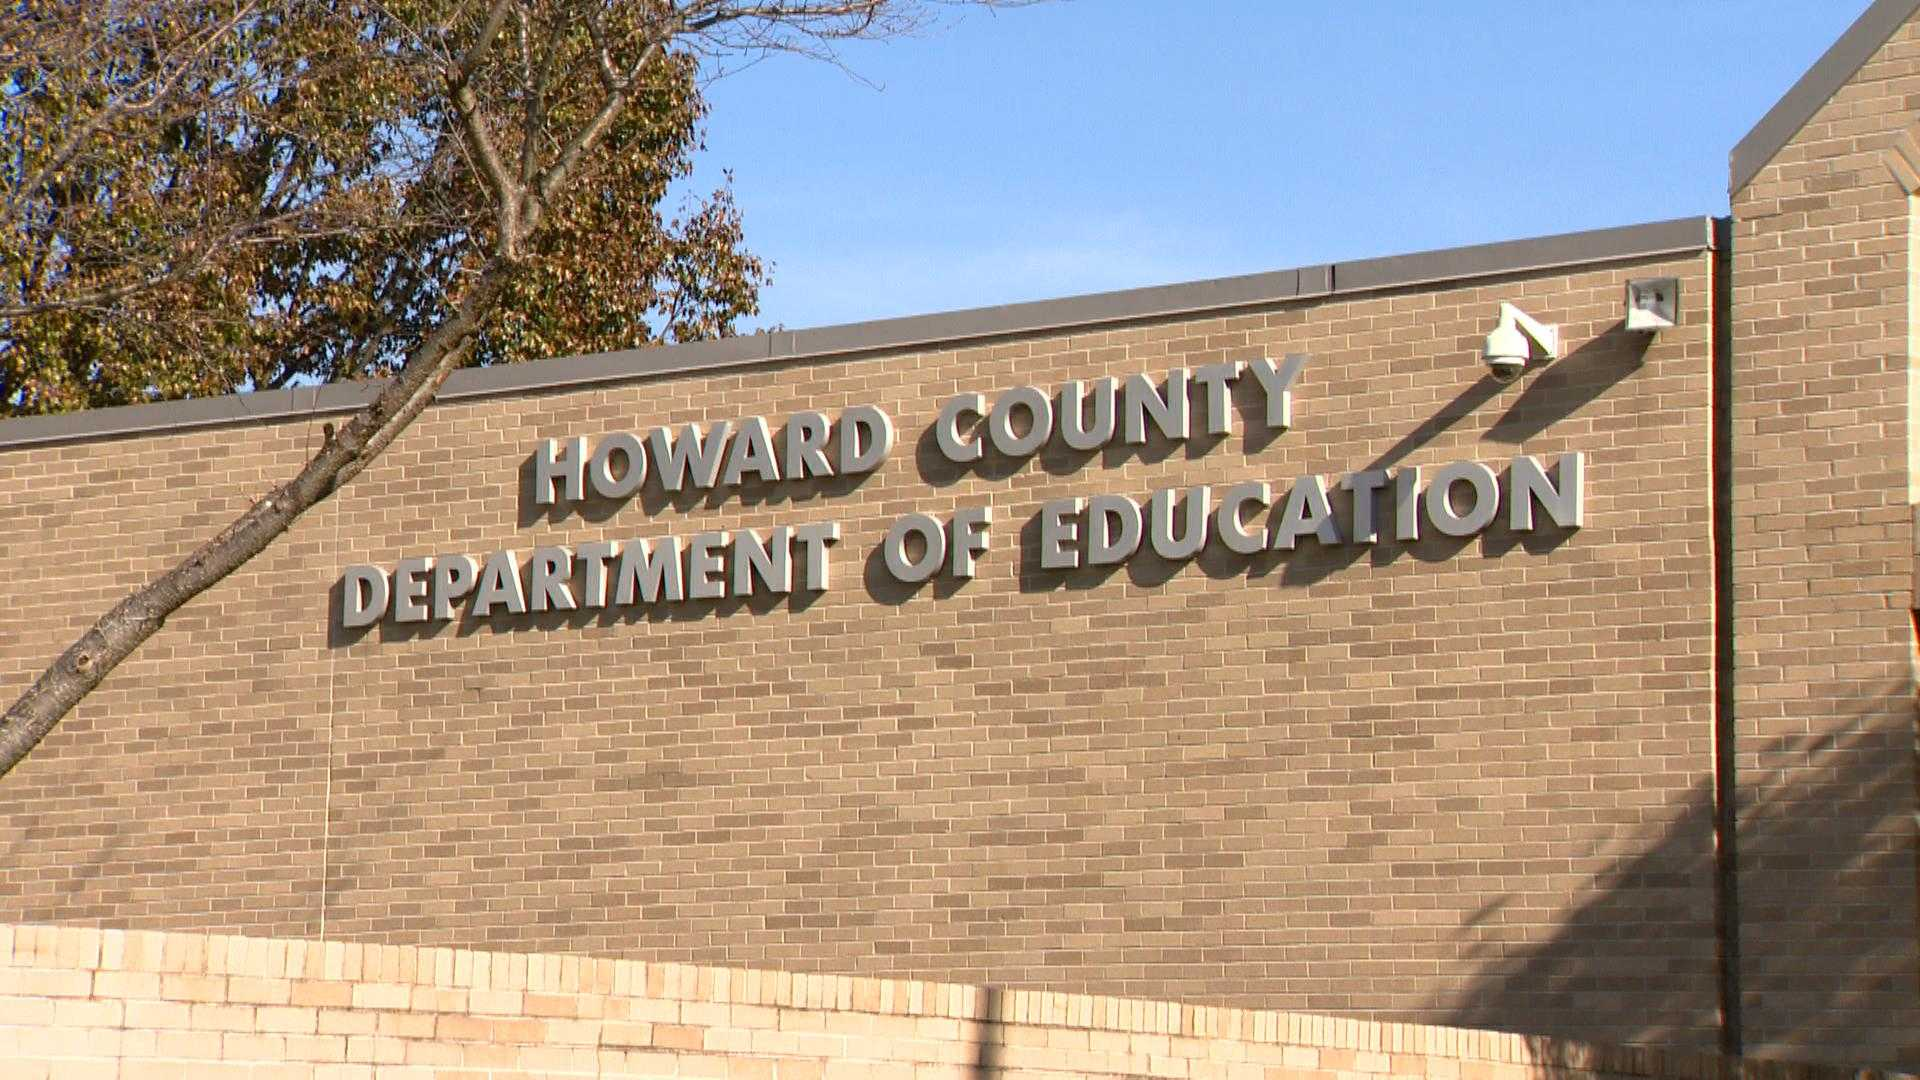 Howard County Department of Education